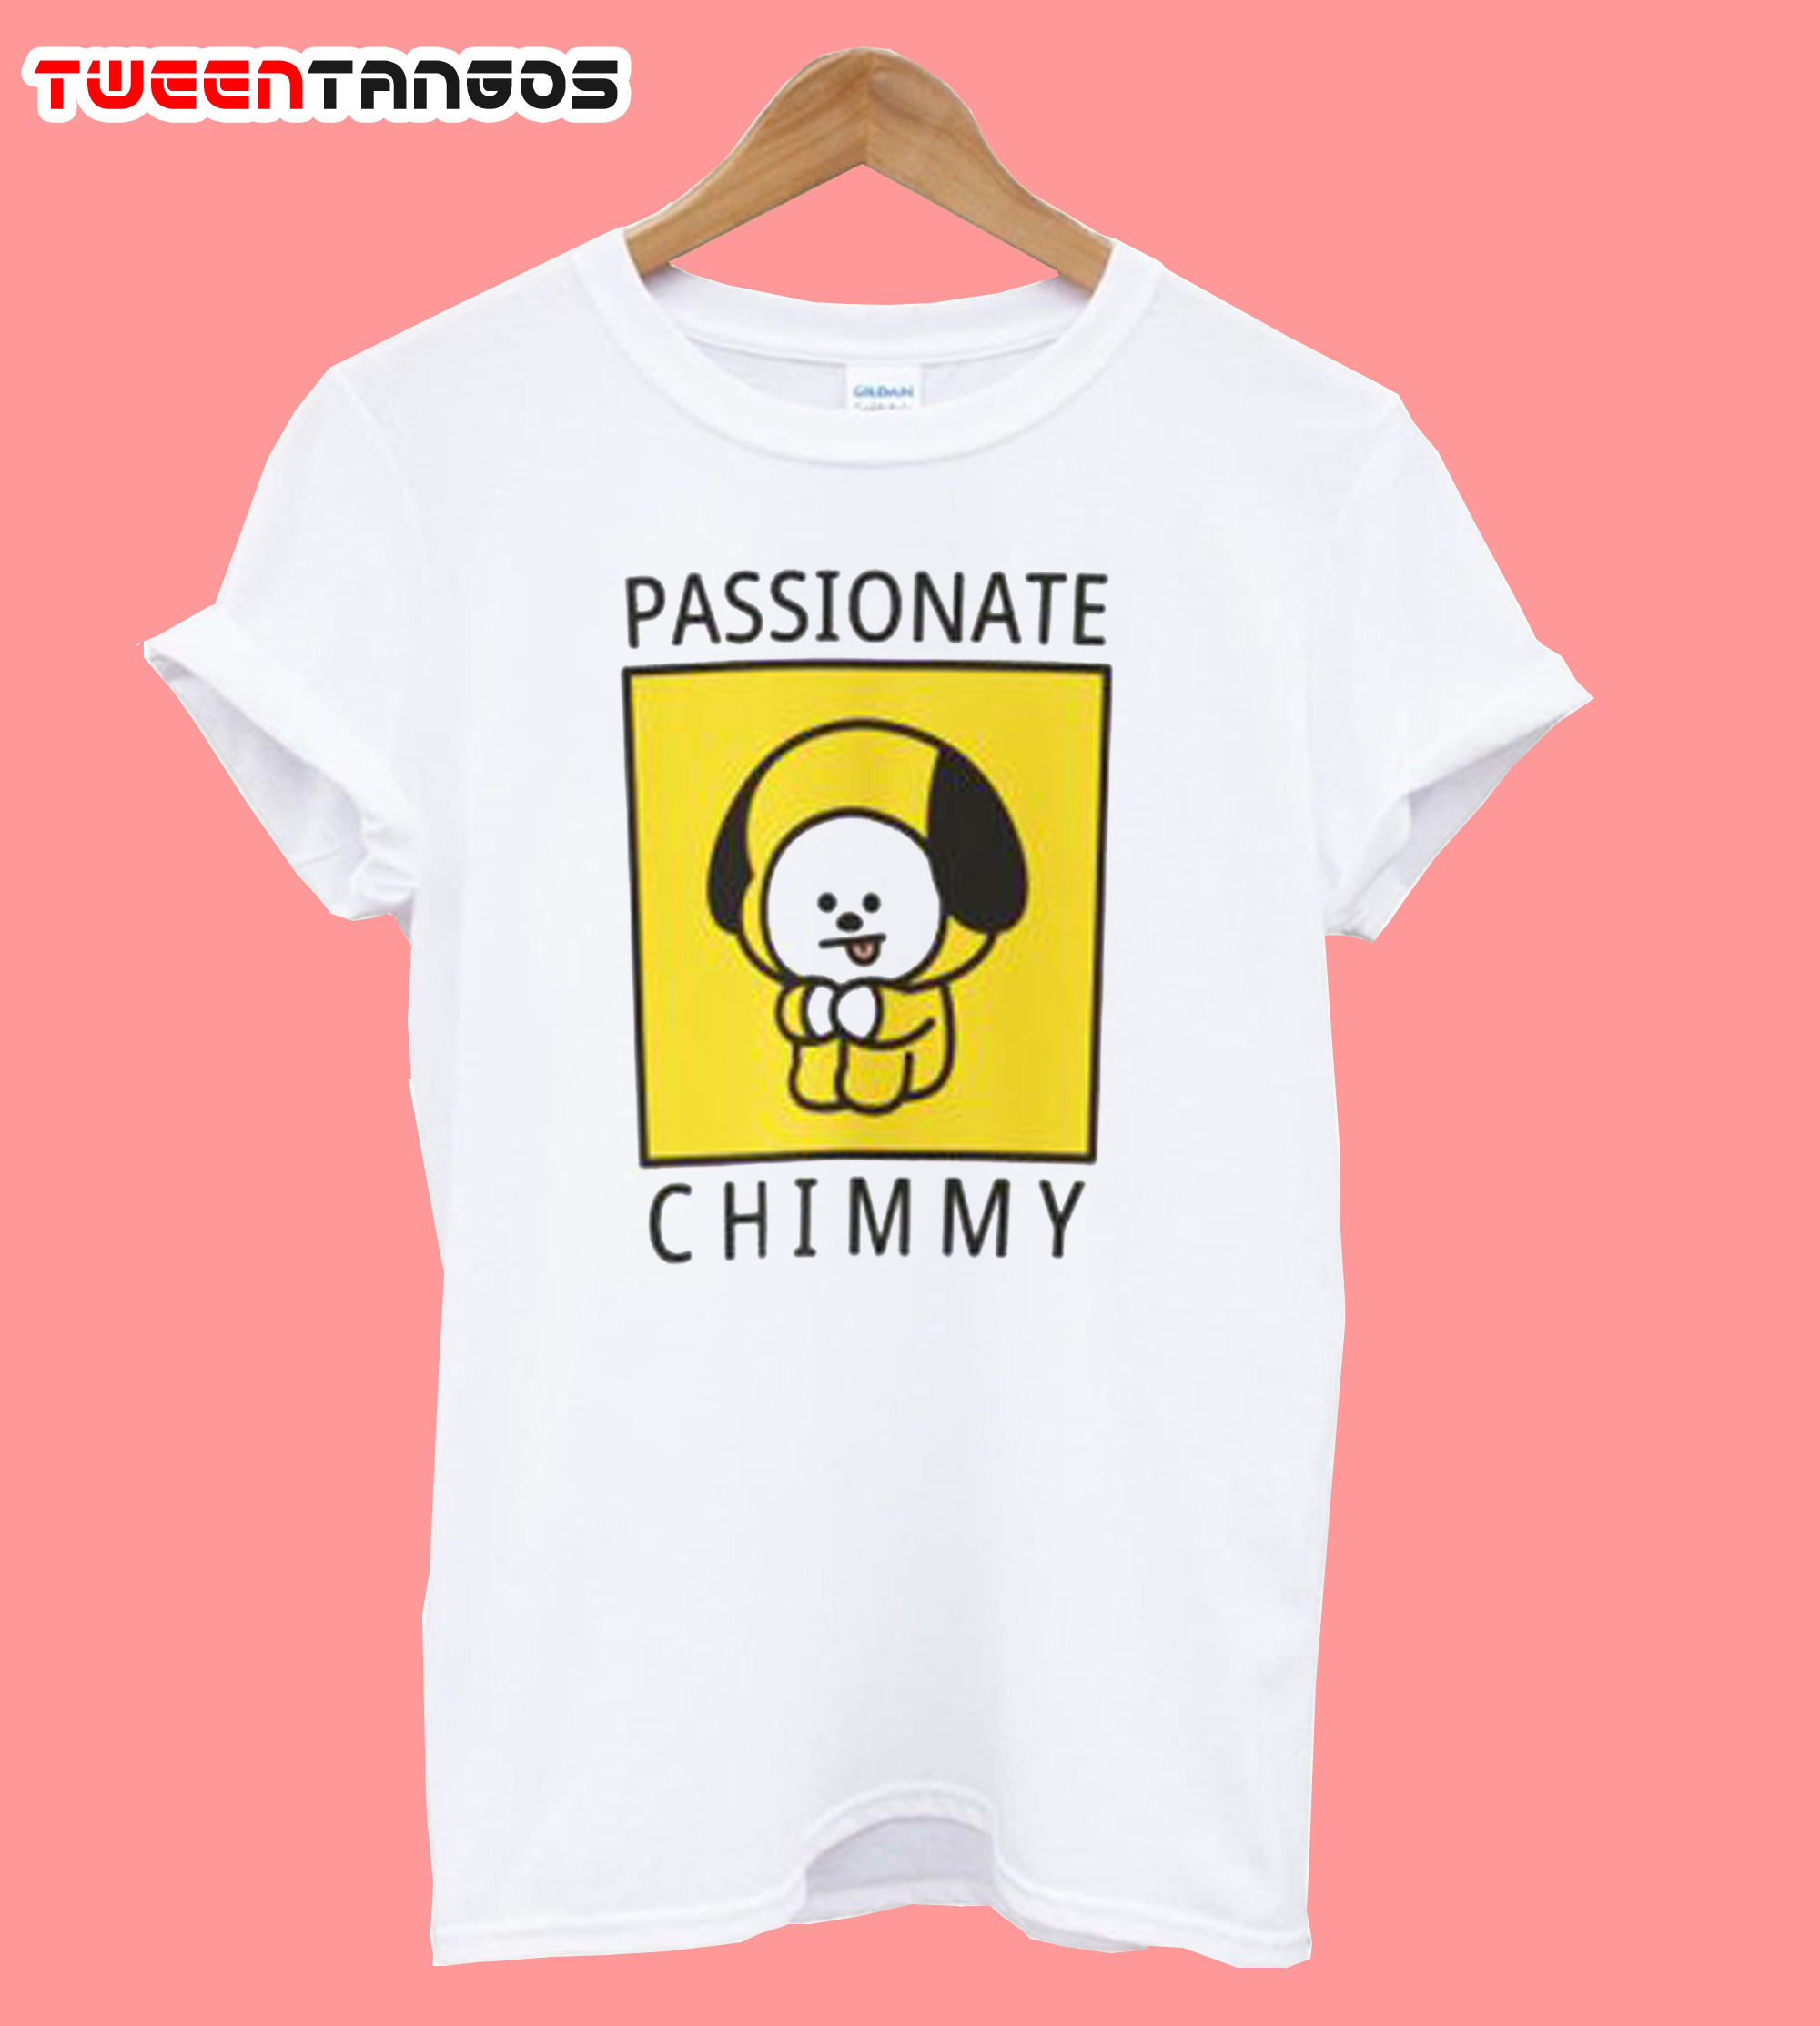 Passionate Chimmy Bt21 Uniqlo T-Shirt